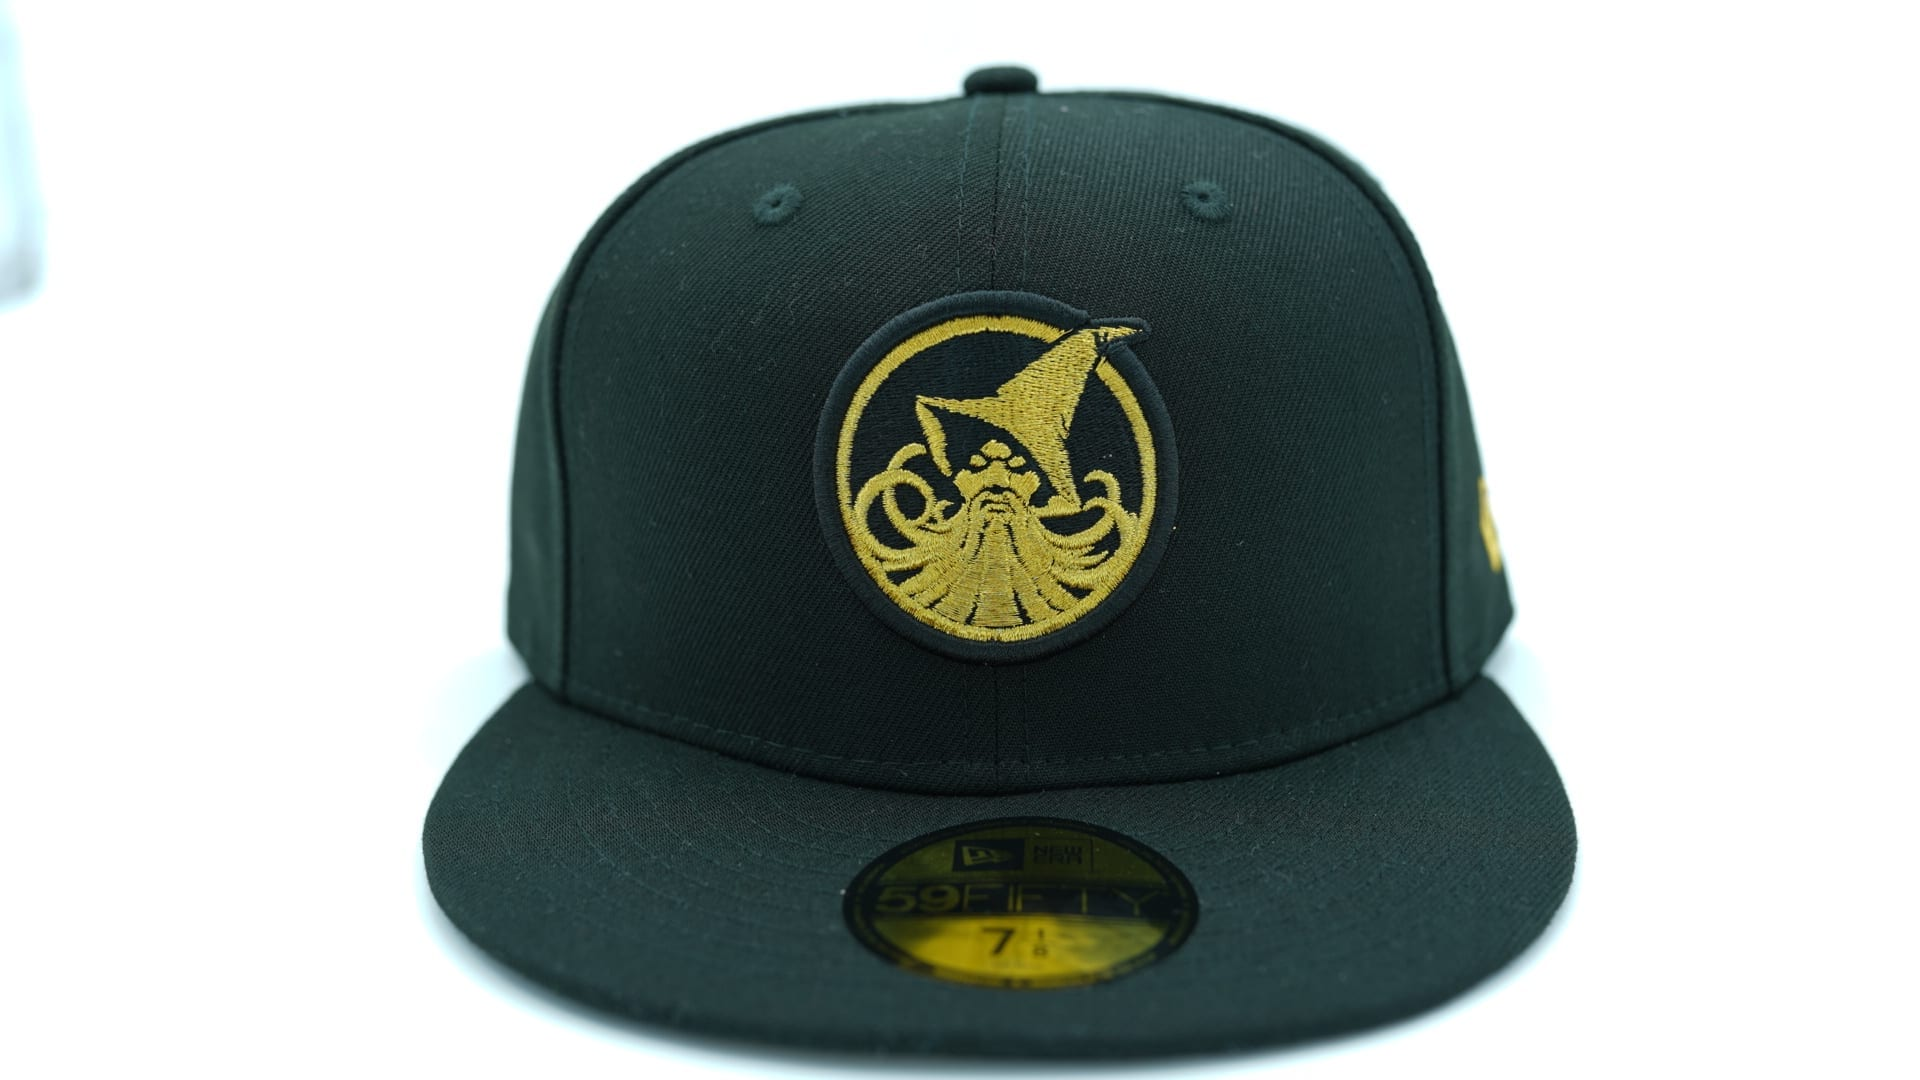 New Orleans Baby Cakes Fitted Cap